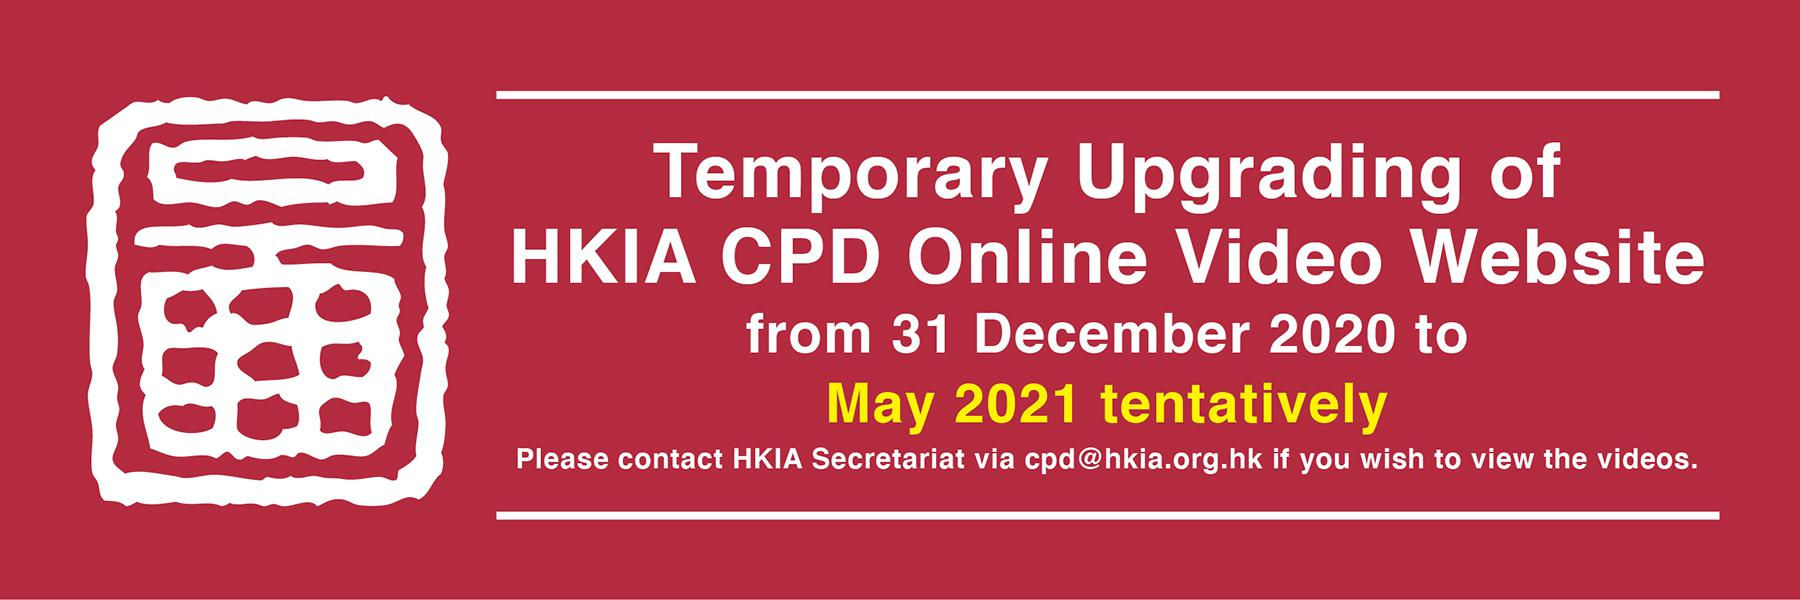 20201221 Temporary Upgrading of HKIA CPD Online Video Website